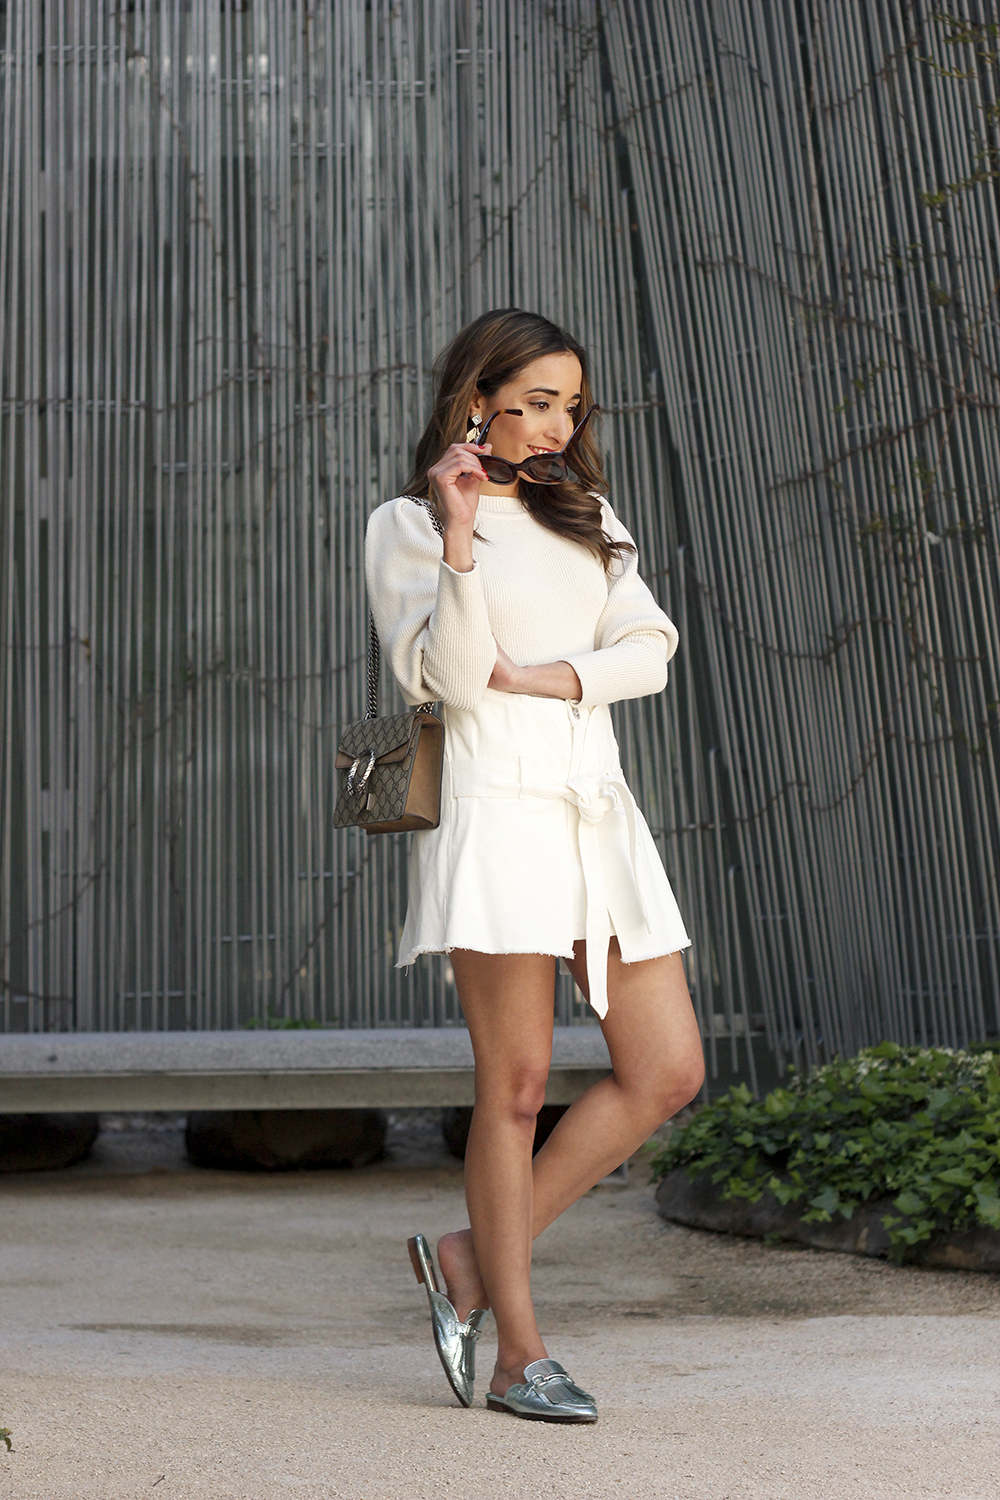 White skirt white sweater blue light mules uterqüe gucci bag céline sunnies spring outfit style outfit04